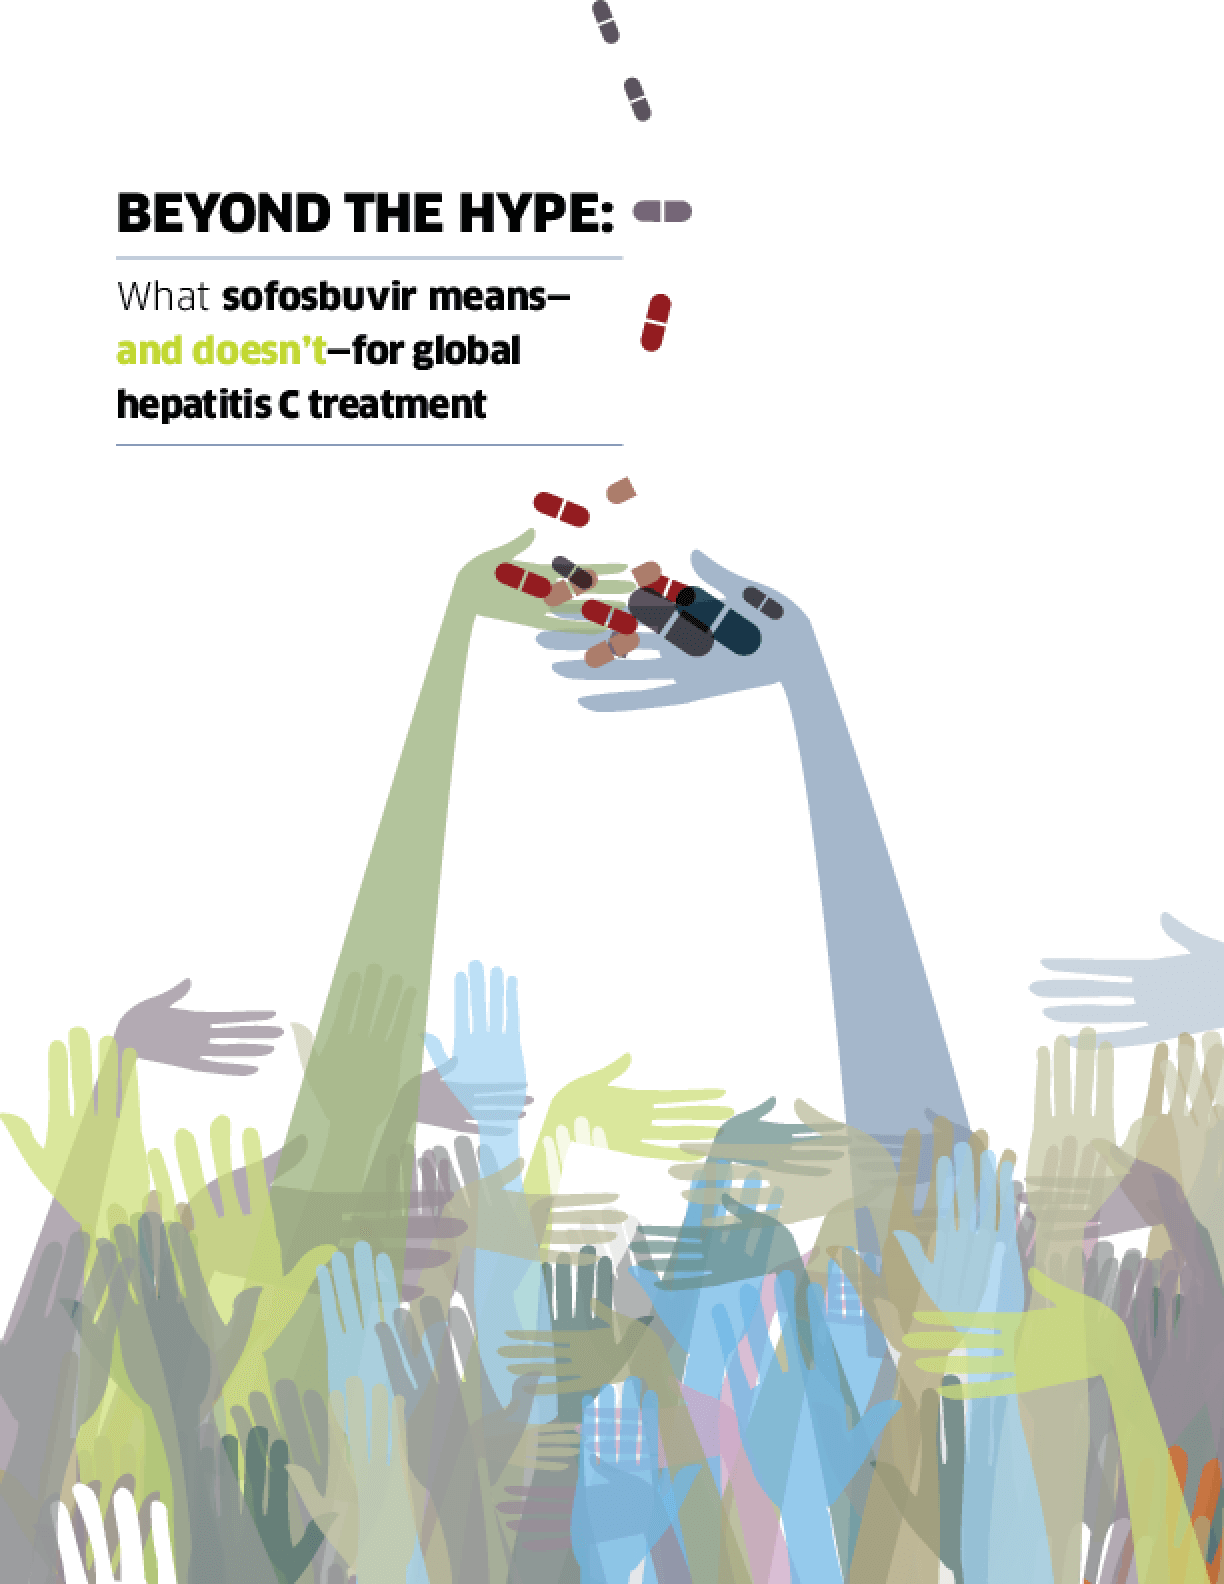 Beyond the Hype: What Sofosbuvir Means - and Doesn't - for Global Hepatitis C Treatment